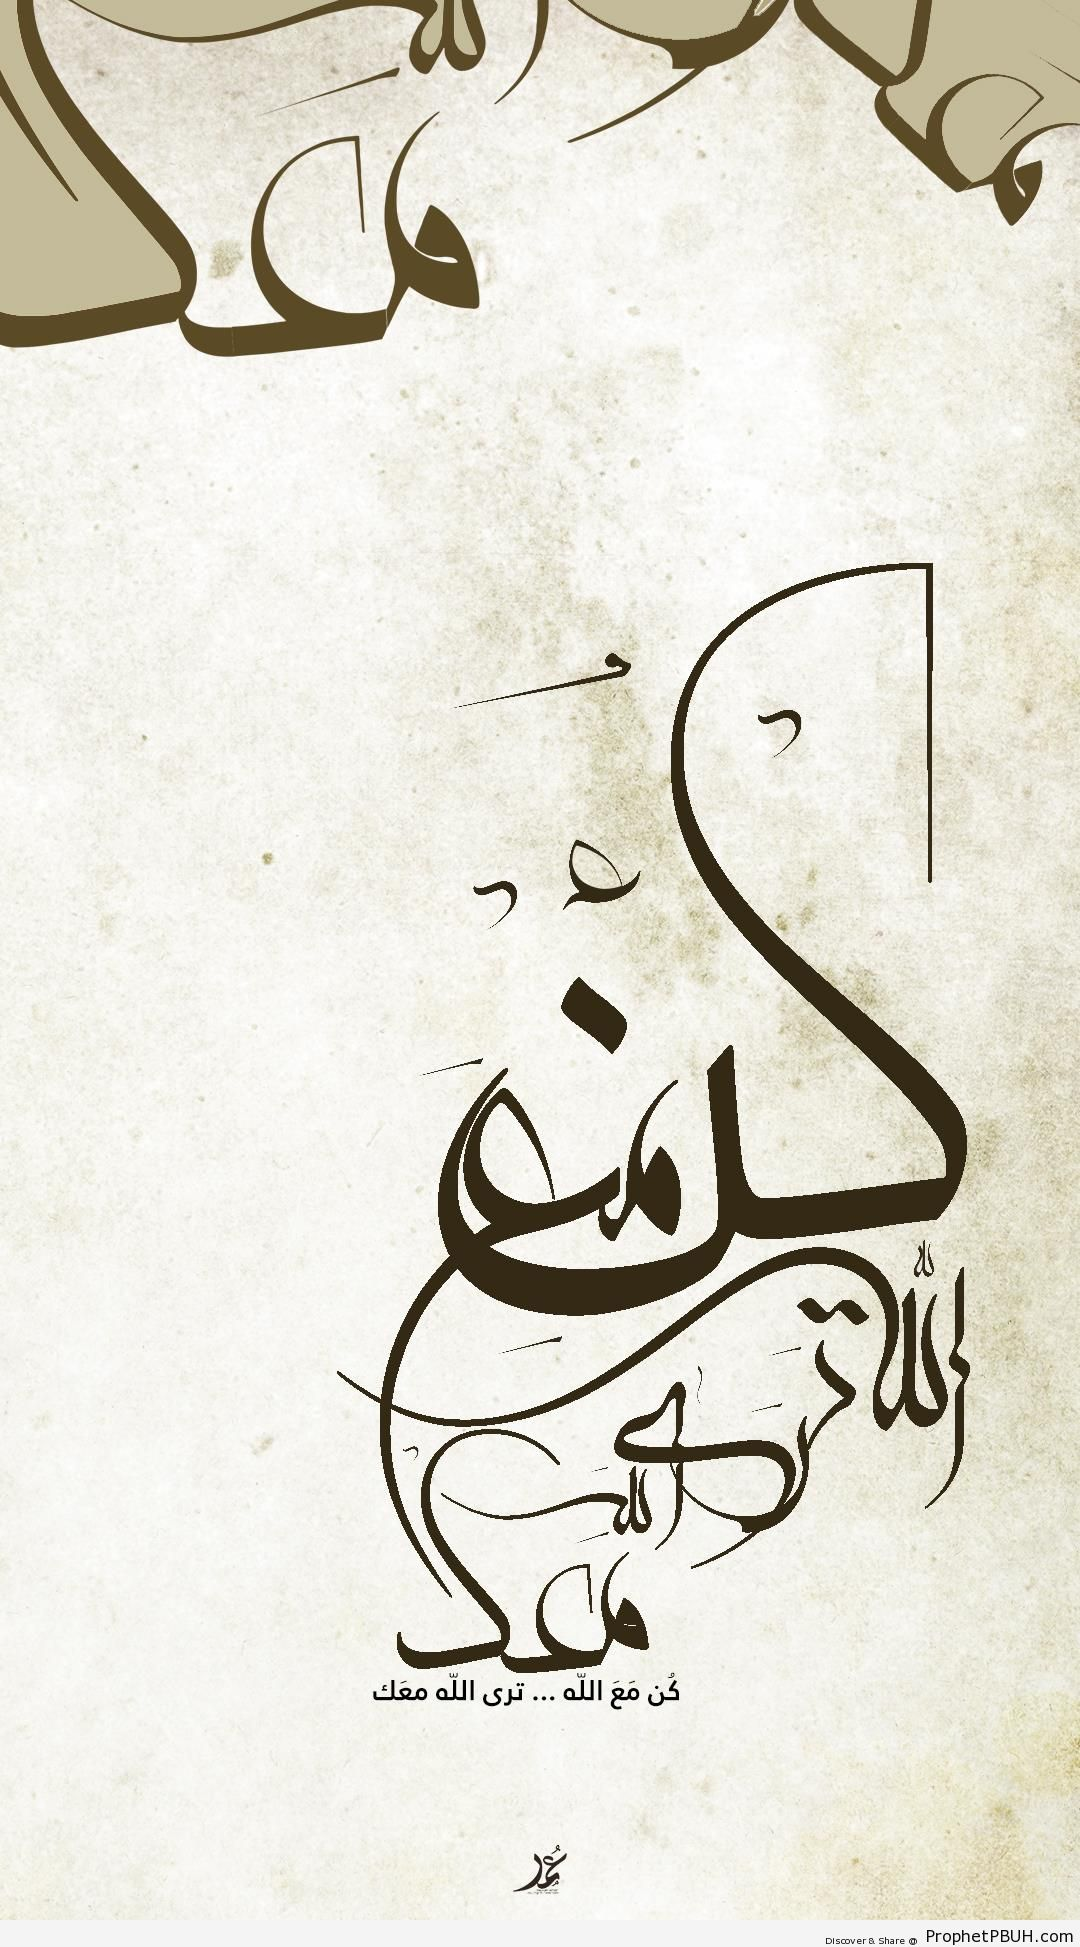 Be With Allah (Islamic Calligraphy) - Islamic Calligraphy and Typography